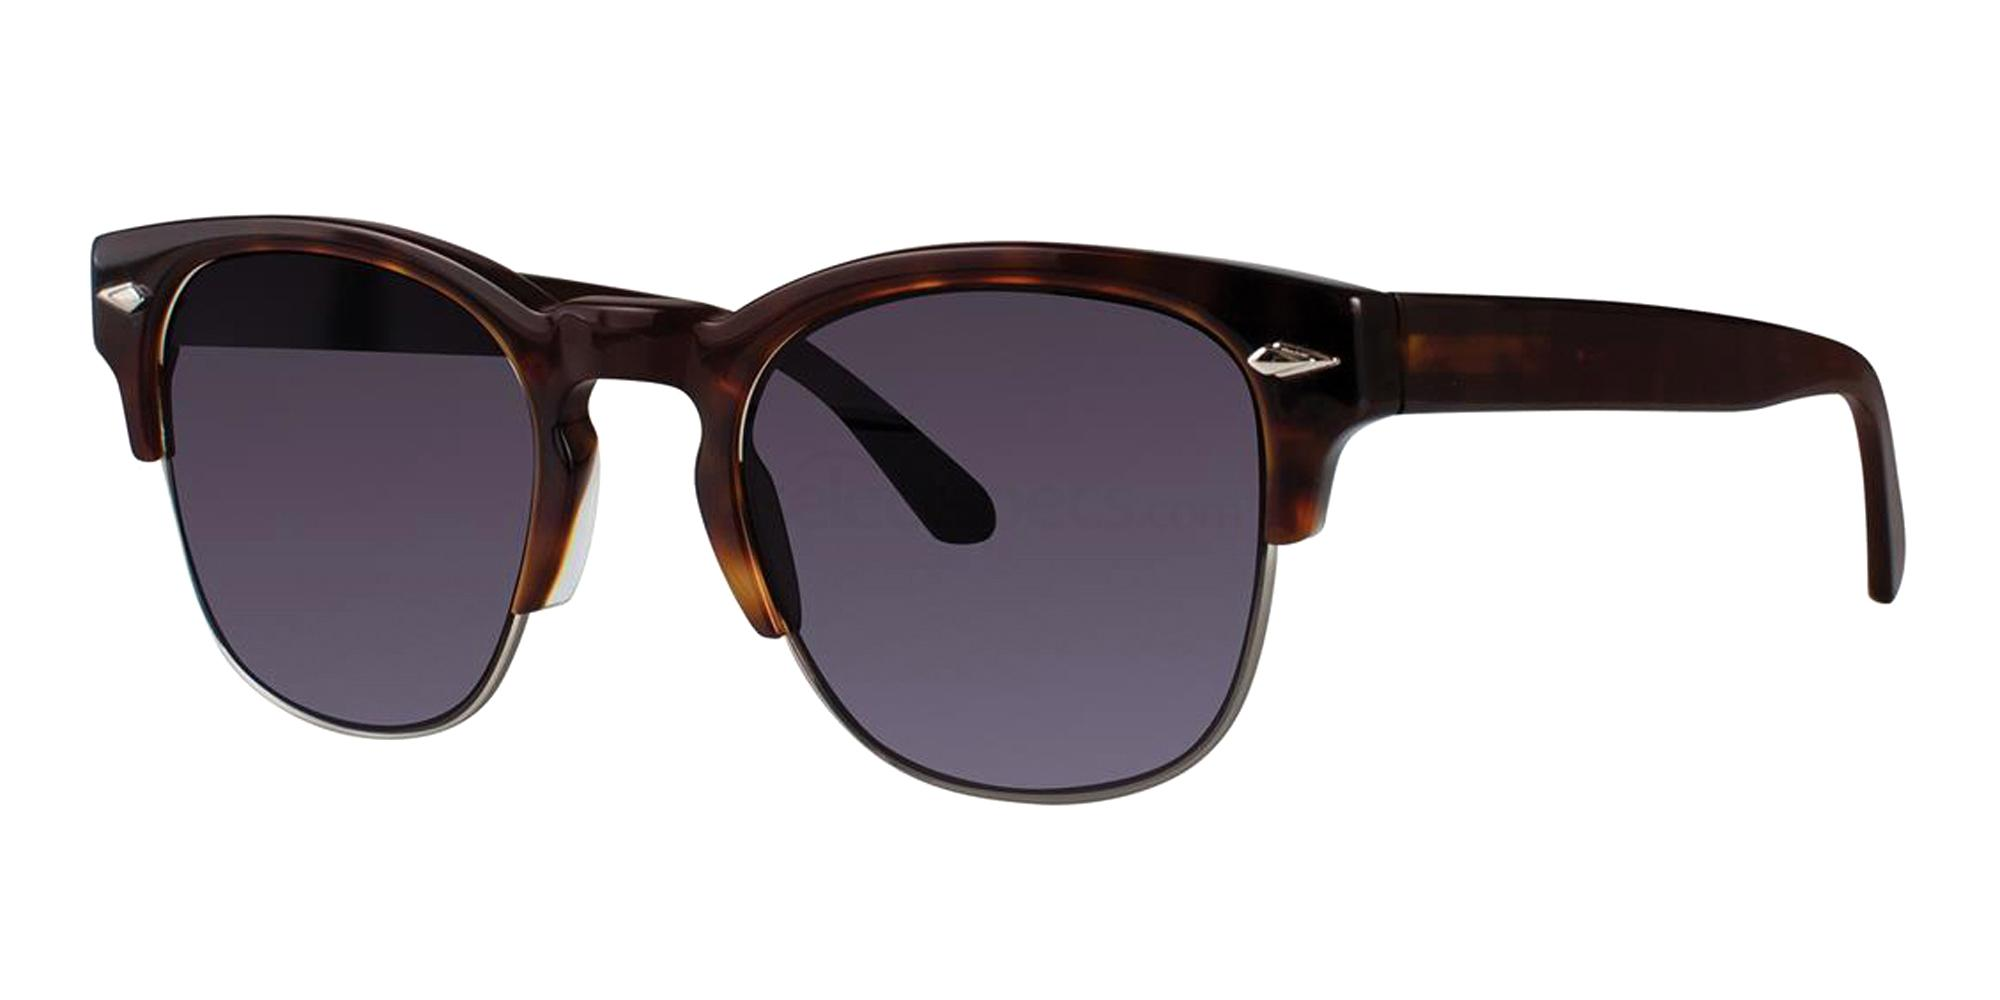 Black ASCOTT Sunglasses, Zac Posen